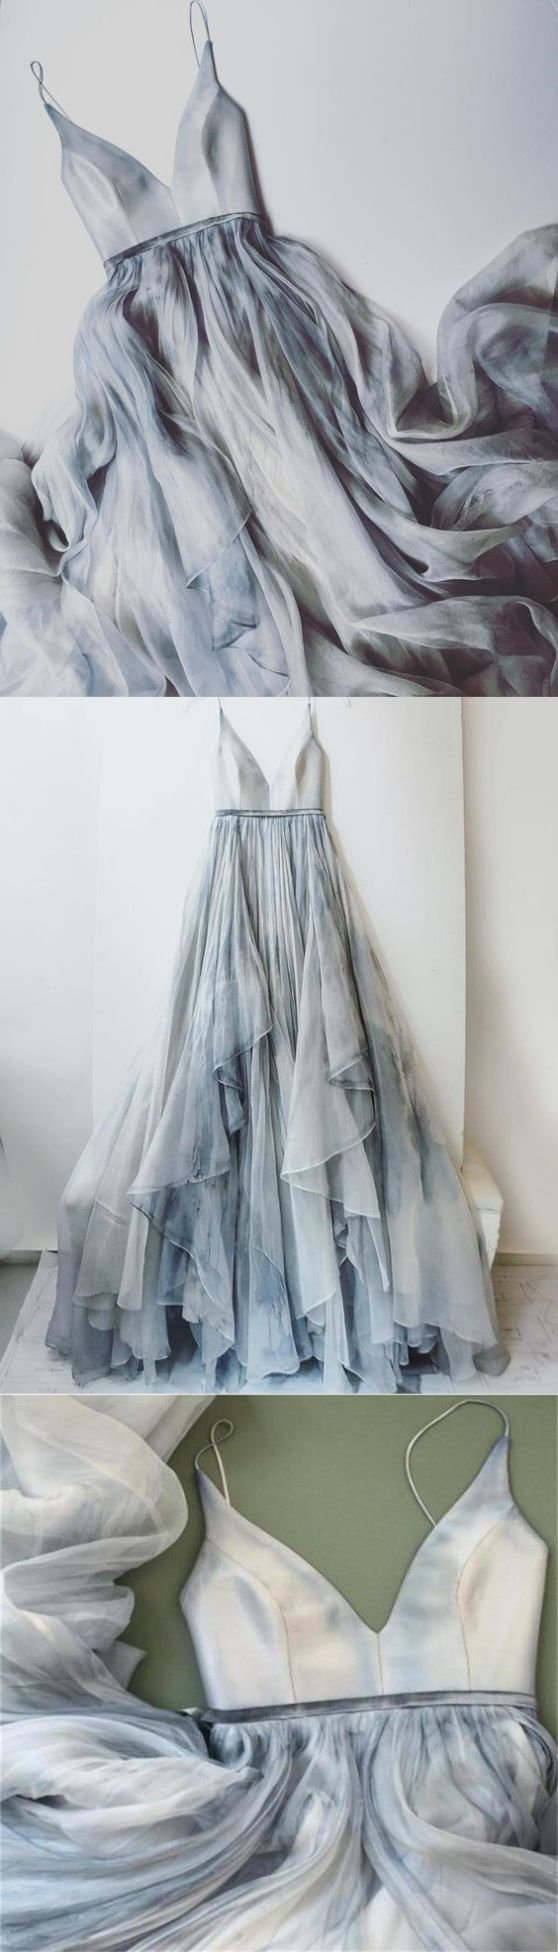 Prom Dresses, Cheap Prom Dresses, Party Dresses, Cheap Dresses, Dresses For Teens, Long Dresses, Prom Dresses Cheap, Bridal Dresses, Pretty Dresses, Long Prom Dresses, Simple Prom Dresses, Cheap Party Dresses, Pretty Prom Dresses, Dresses For Prom, Simple Dresses, Dresses For Cheap, Cheap Long Prom Dresses, Cheap Long Dresses, Prom Dresses For Cheap, Party Dresses Cheap, Plus Dresses, Dresses Cheap, Long Party Dresses, Cheap Dresses For Teens, Dresses Prom, Prom Dresses Long, Long Dres...